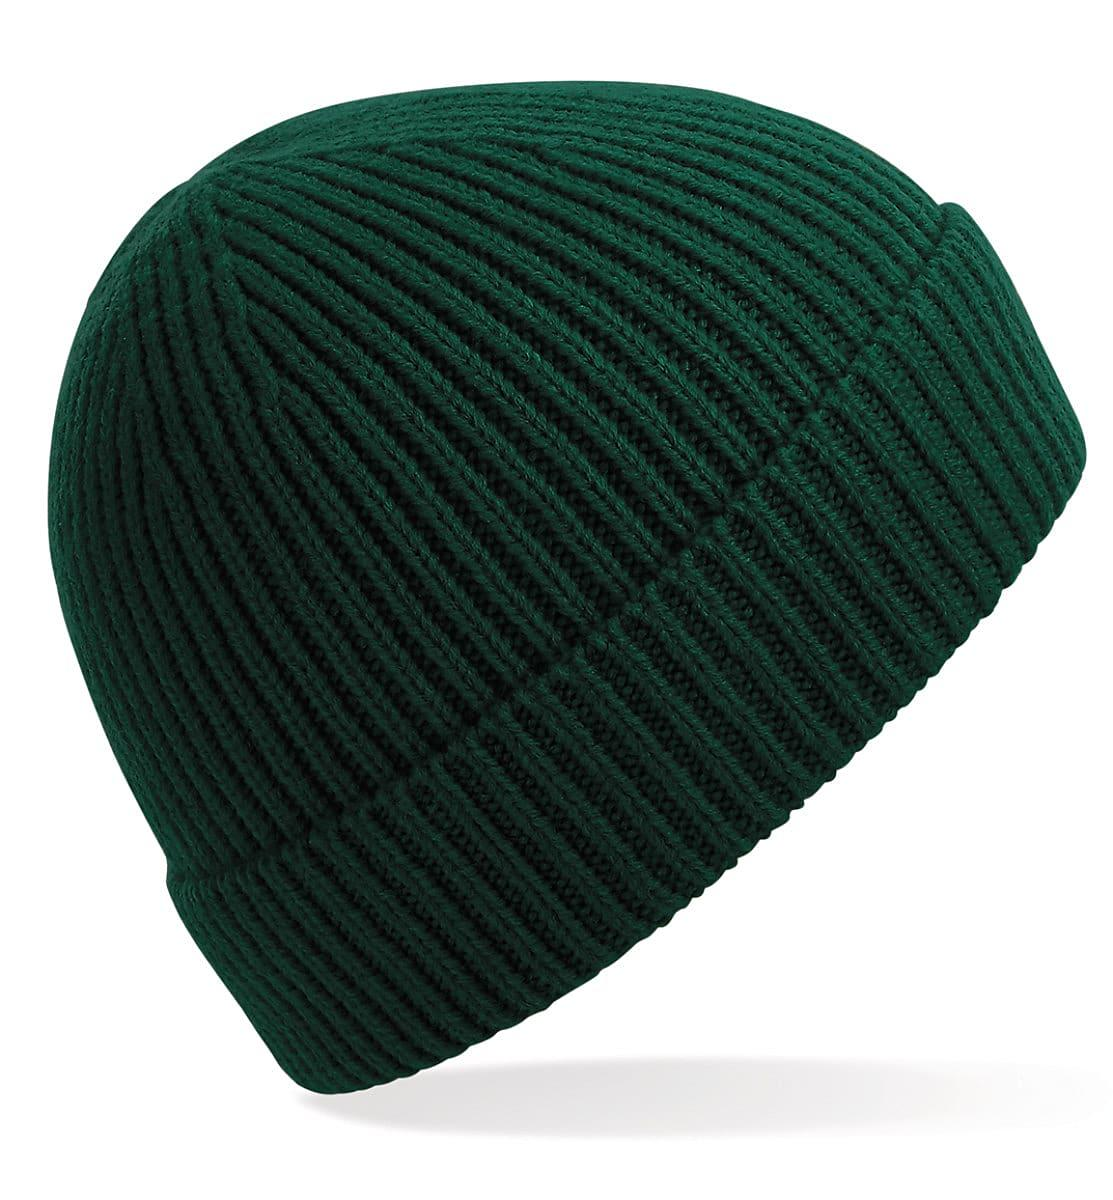 Beechfield Engineered Knit Ribbed Beanie Hat in Bottle Green (Product Code: B380)